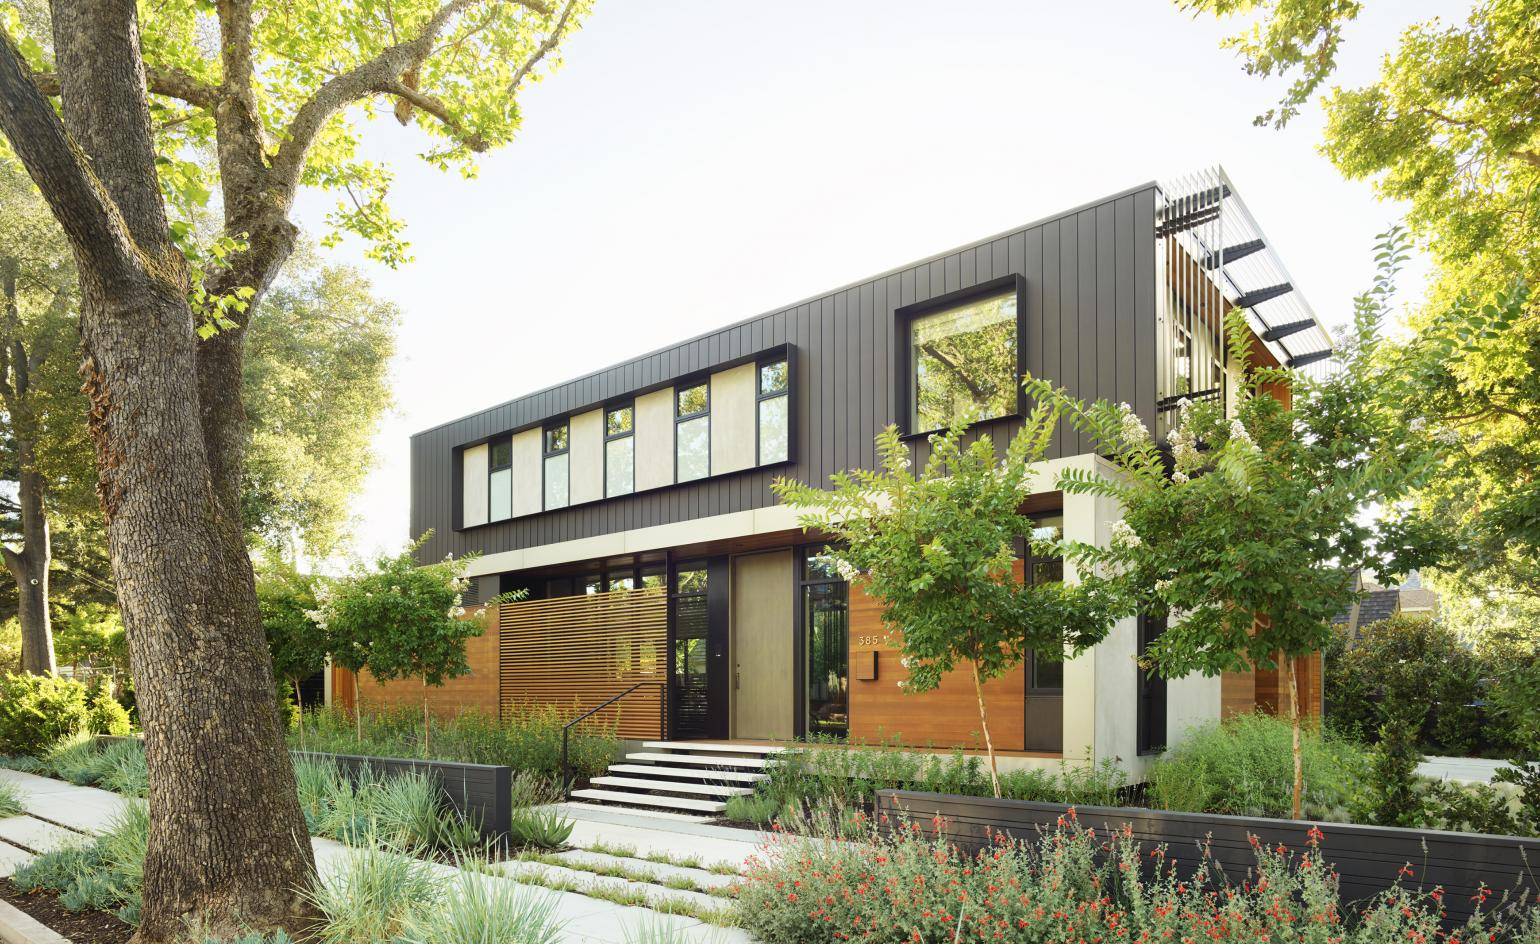 Hovering house: Studio Vara's family home appears to rise from its Palo Alto plot